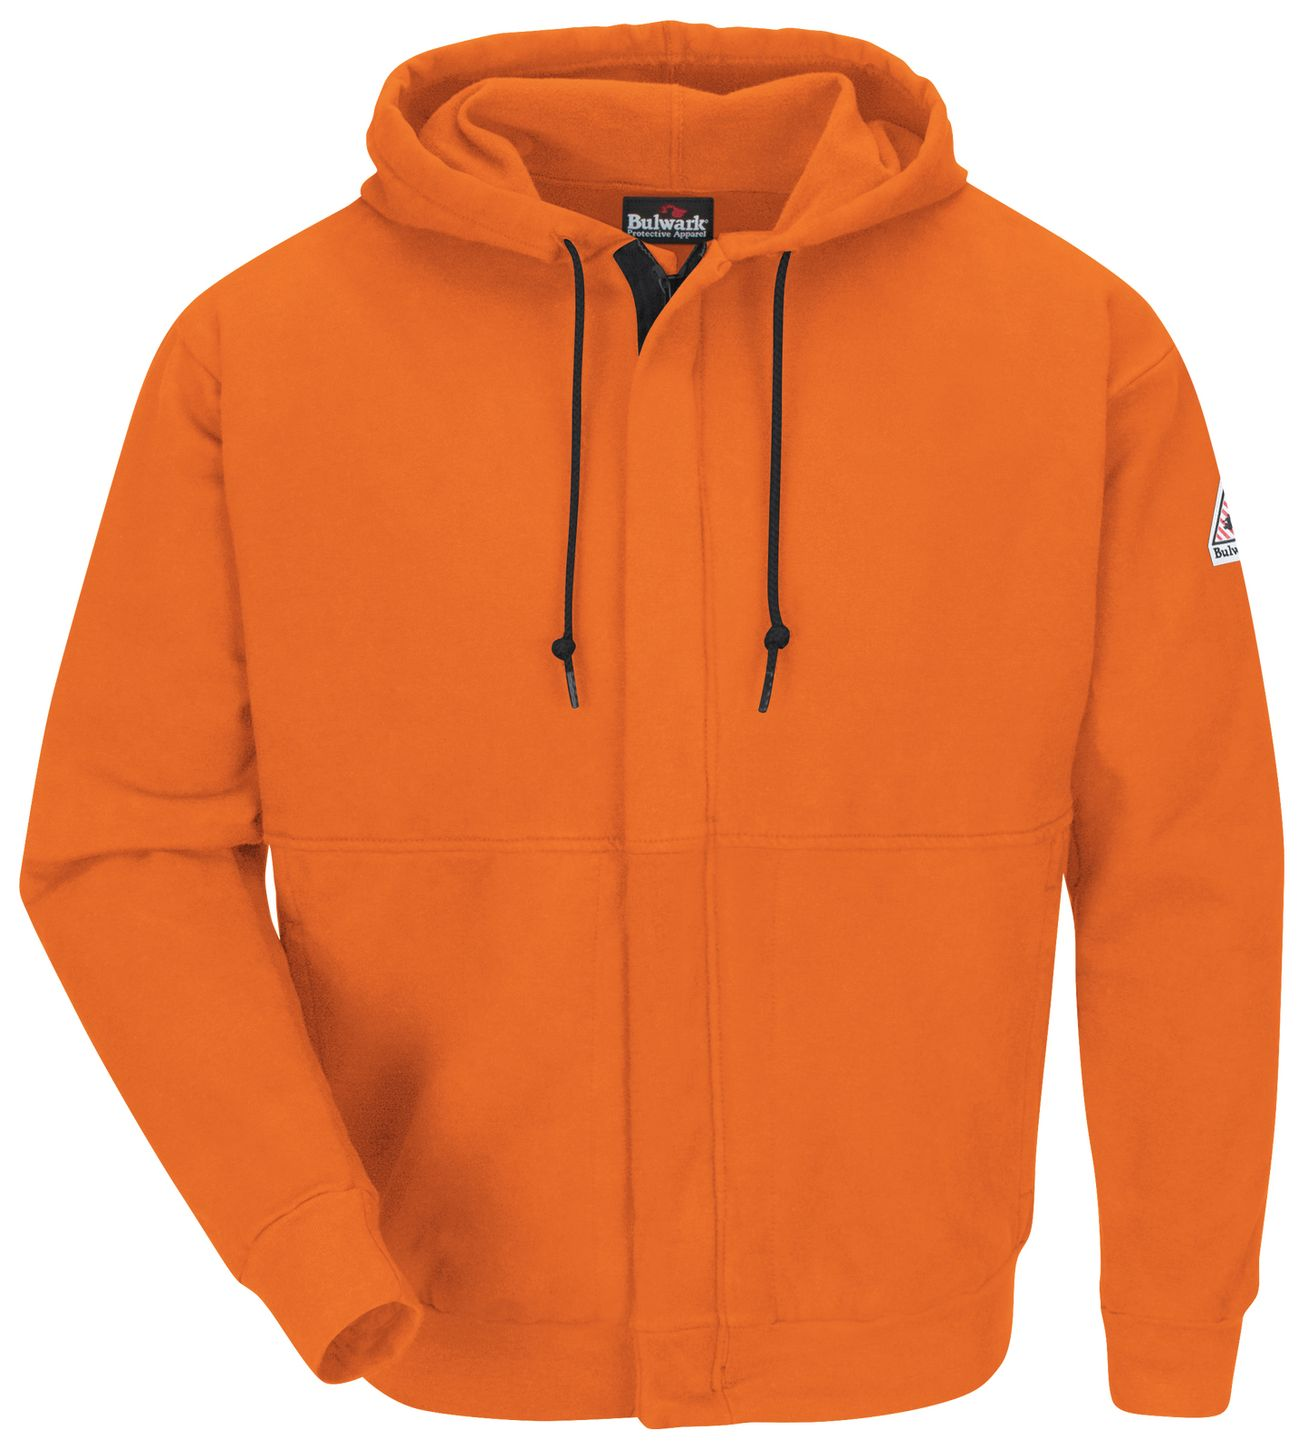 bulwark-fr-sweatshirt-seh4-hooded-fleece-zip-front-orange-front.jpg